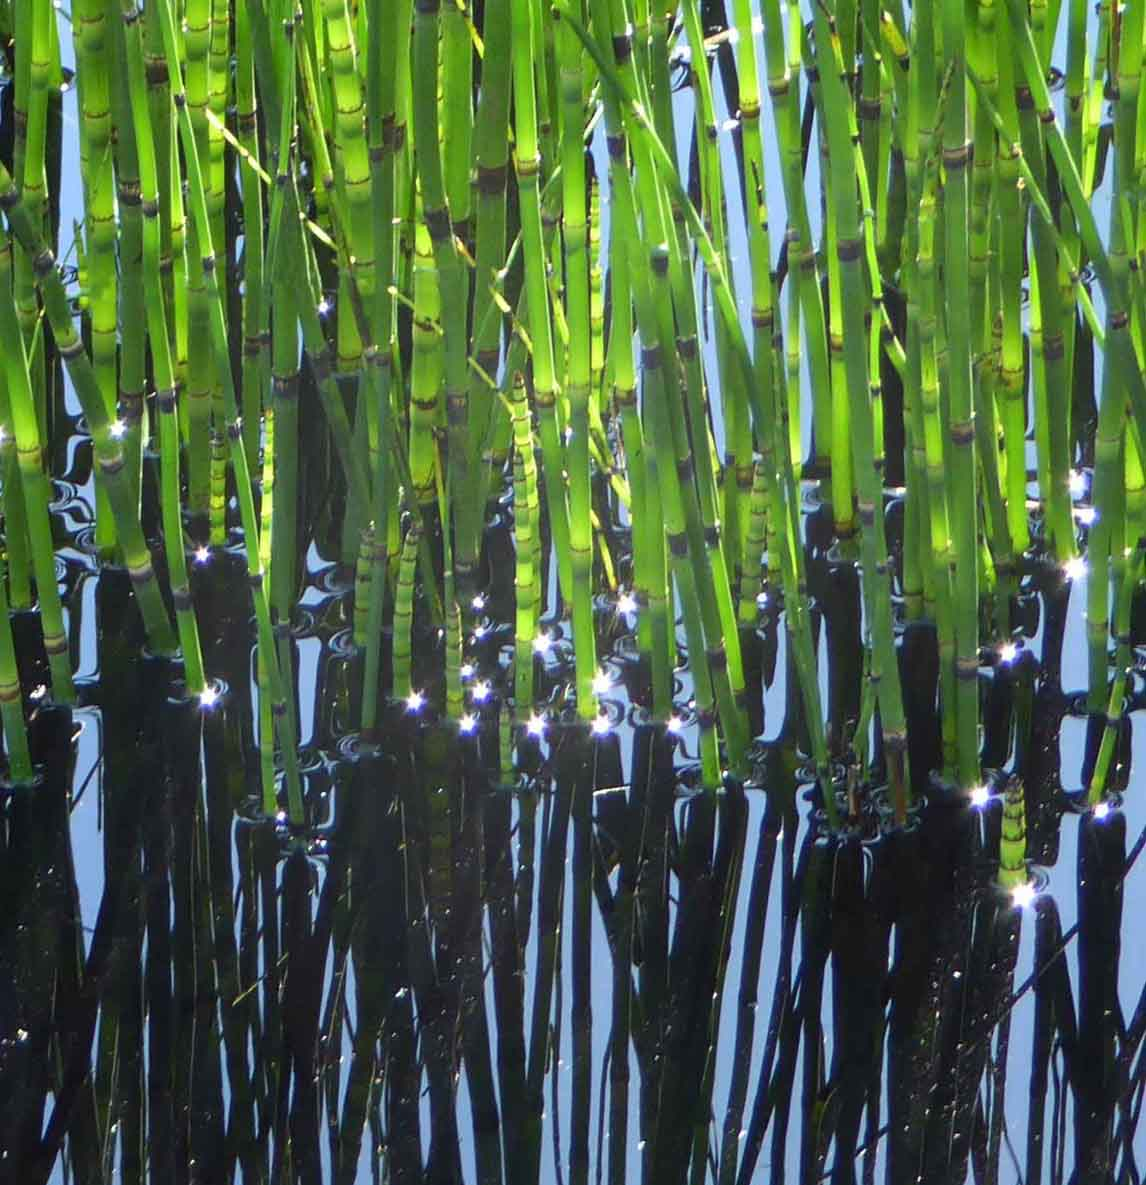 Equisetum hymale with water reflection